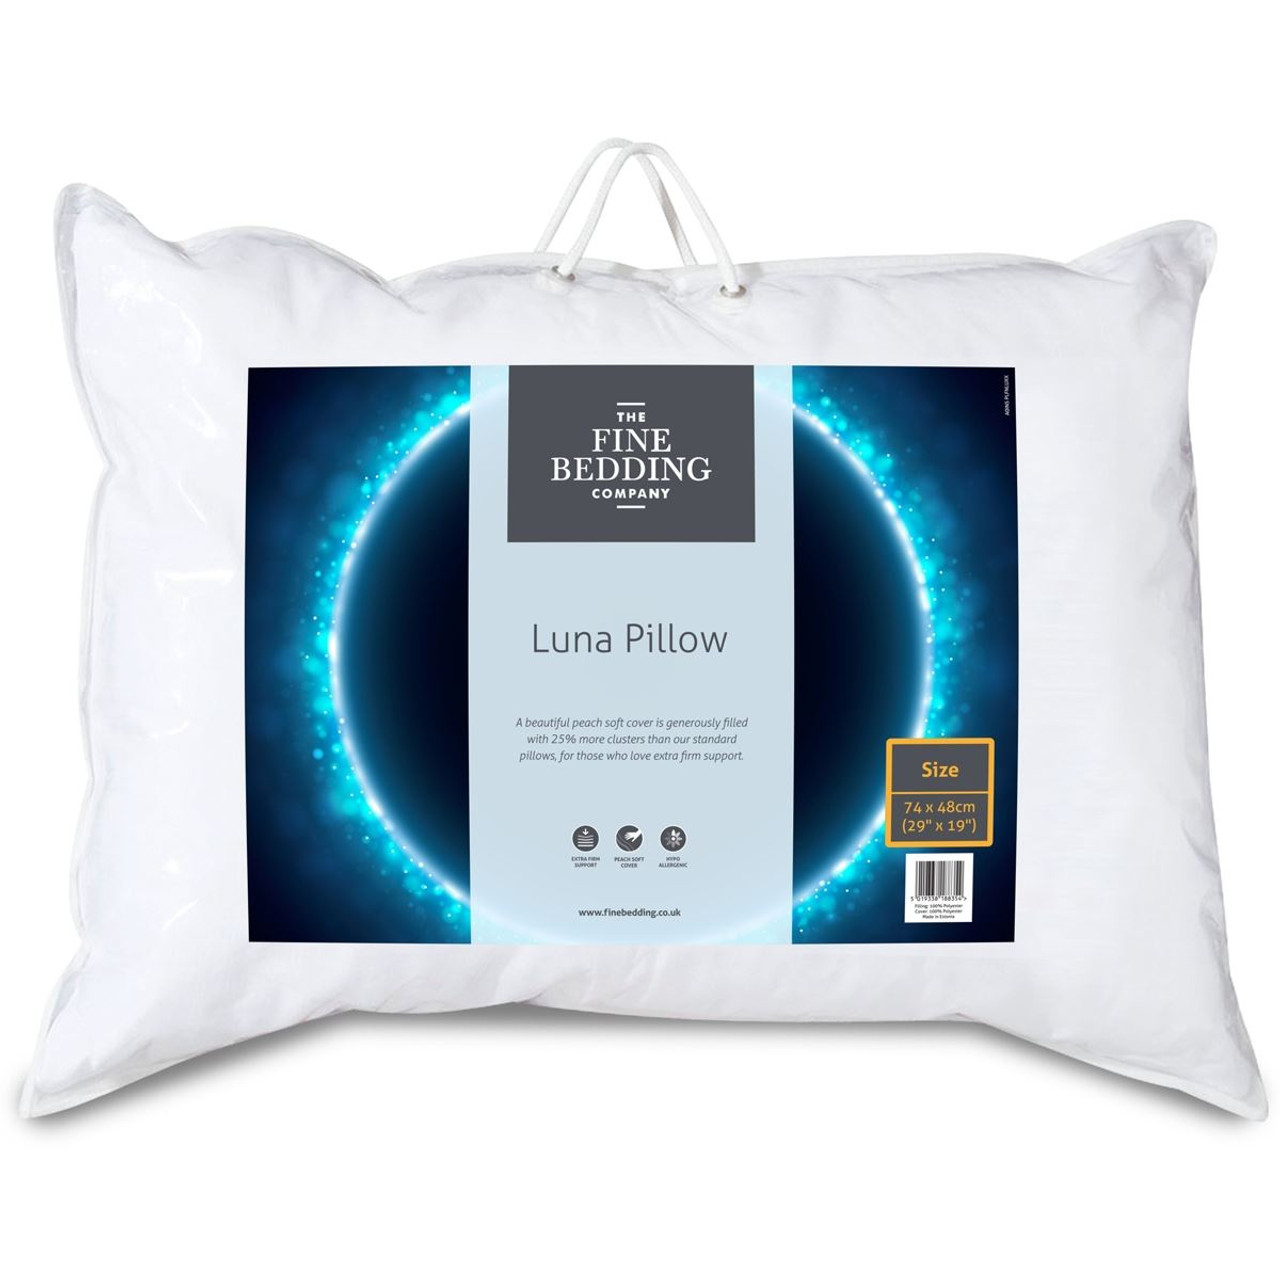 The Fine Bedding Company Luna Pillow packaging